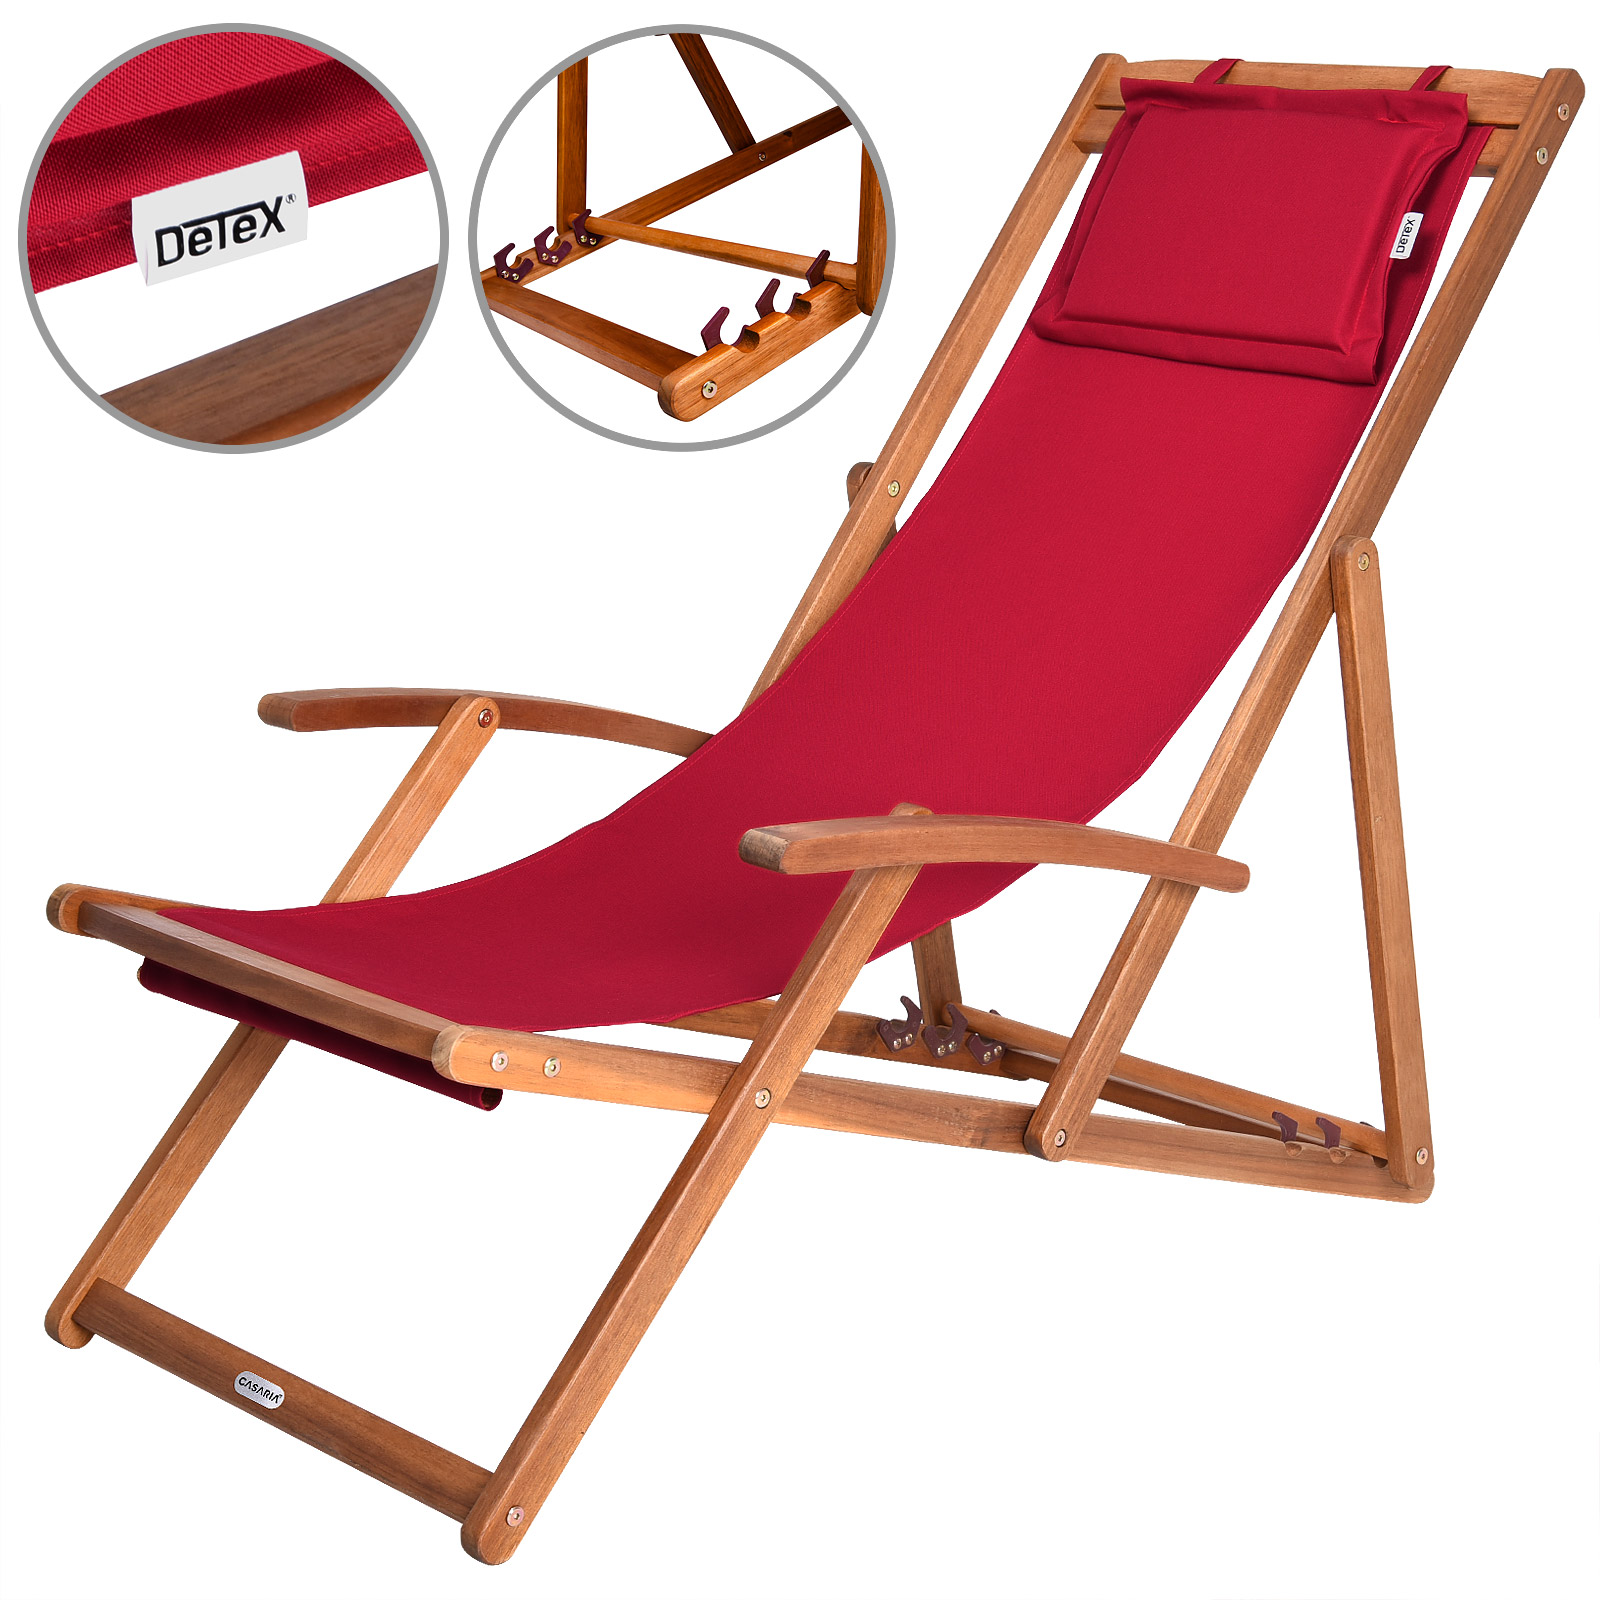 liegestuhl sonnenliege holz gartenliege strandliege liege relaxliege deckchair ebay. Black Bedroom Furniture Sets. Home Design Ideas